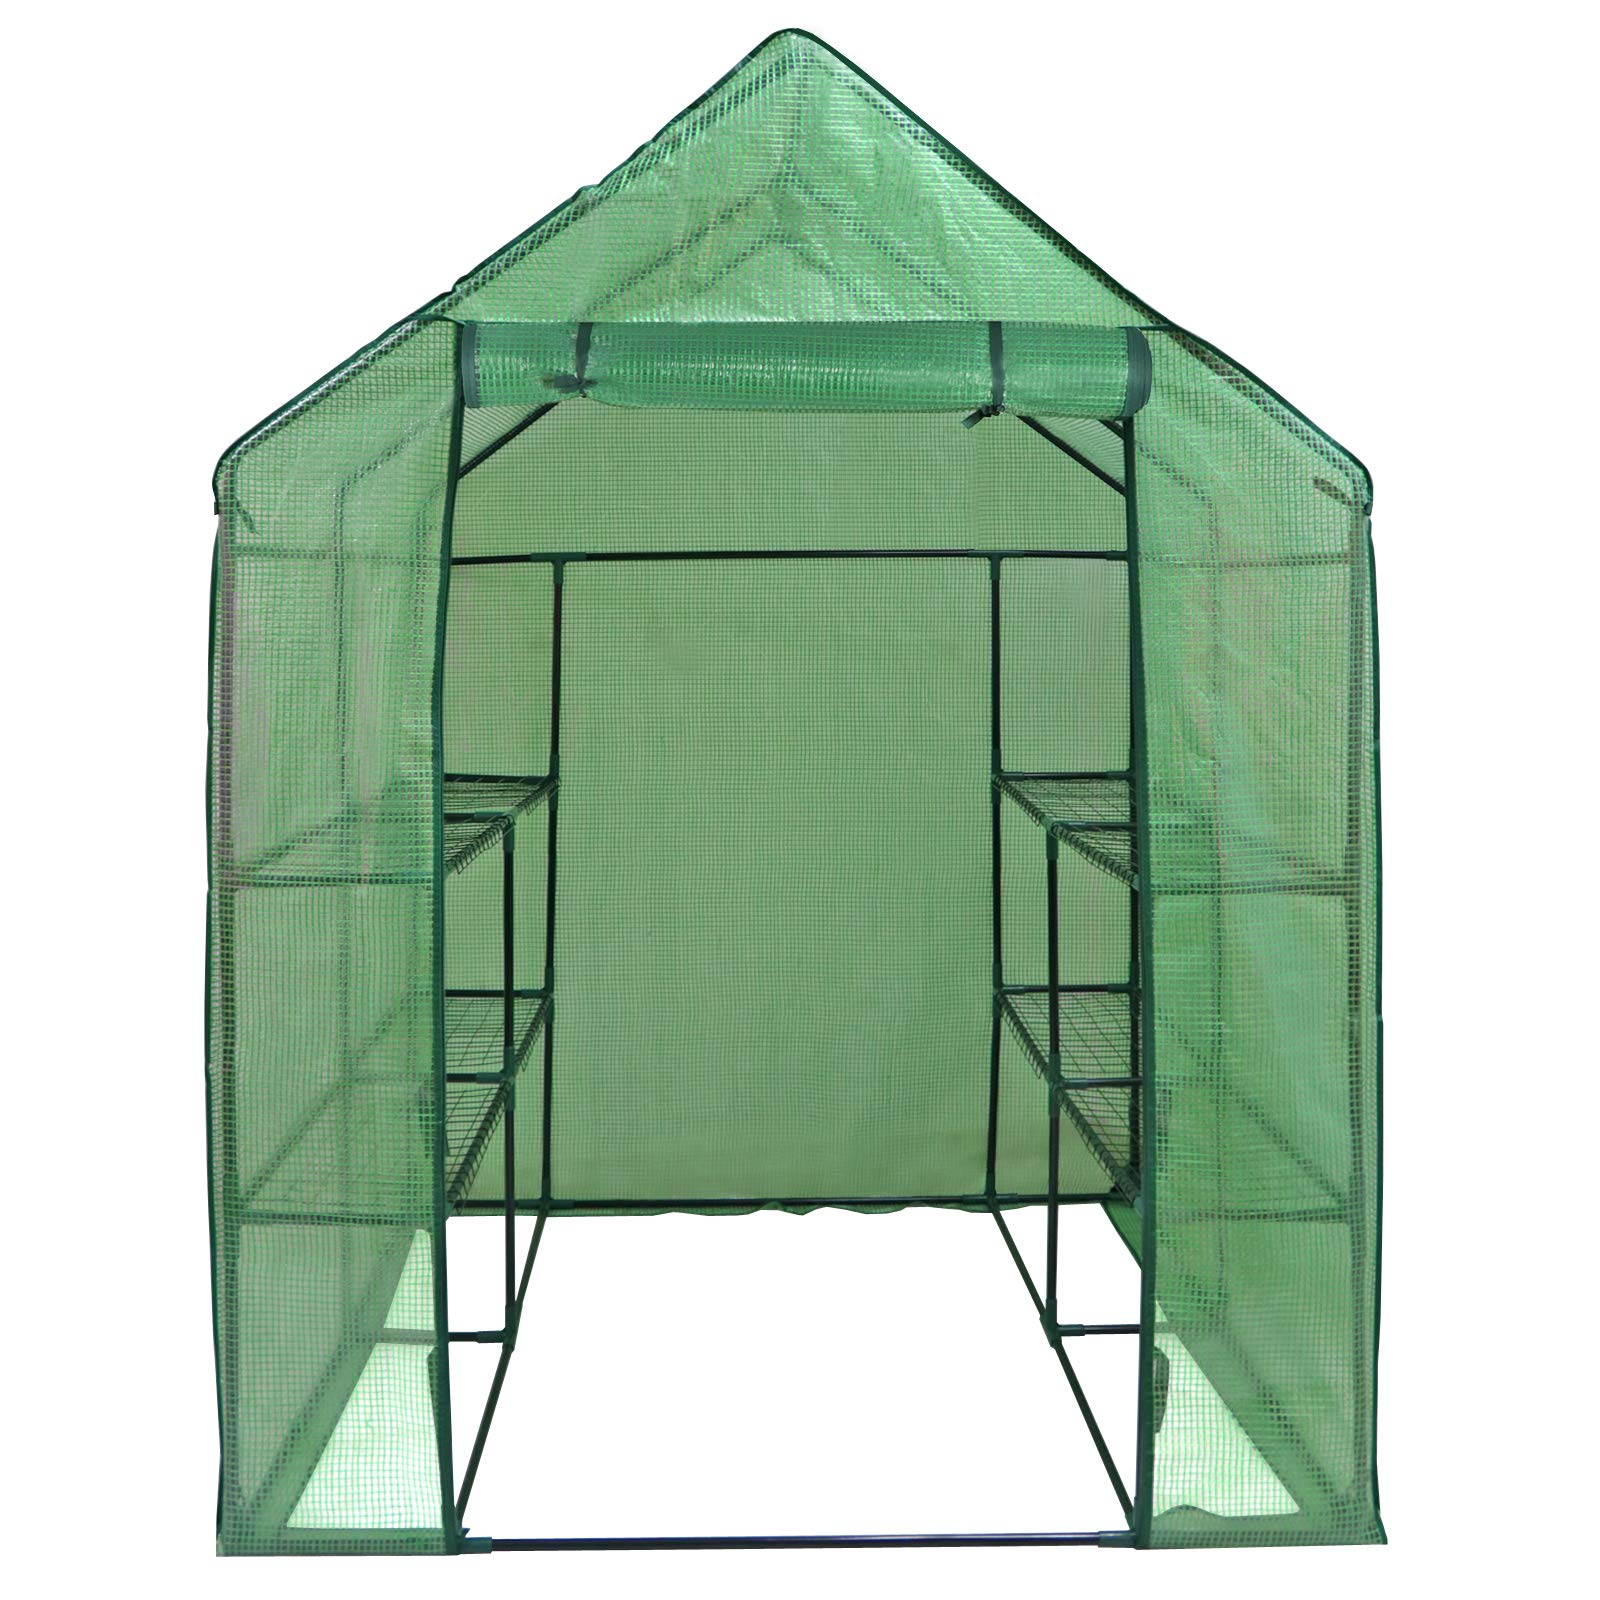 ZENY Mini Walk-in Greenhouse with PE Cover Portable Plants Flower Garden House Indoor Outdoor 2 Tiers 8 Shelves and Roll-up Zipper Door 57''(L) x 57''(W) x 77''(H) by ZENY